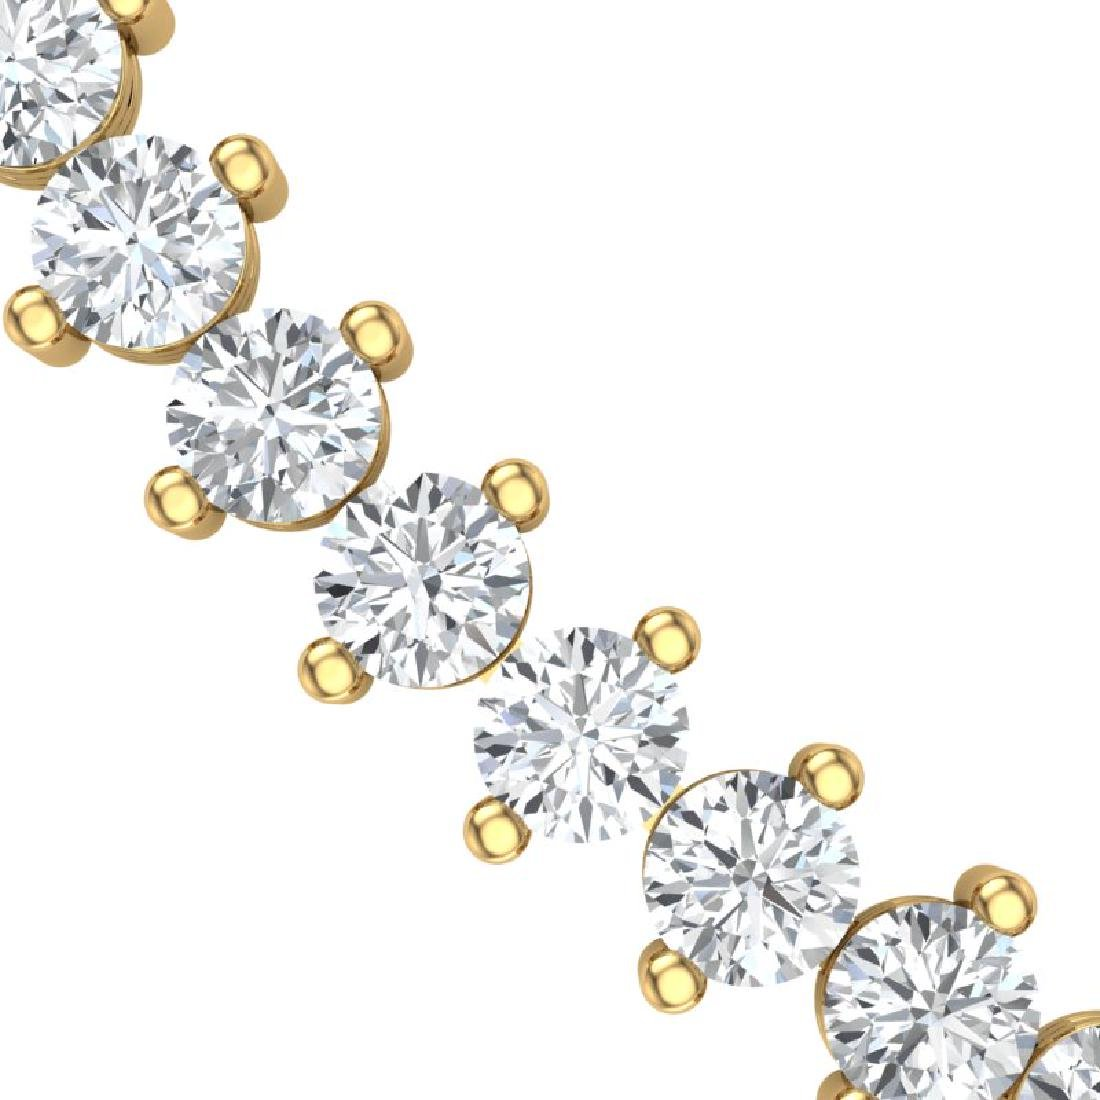 20 CTW Certified VS/SI Diamond Necklace 18K Yellow Gold - 2